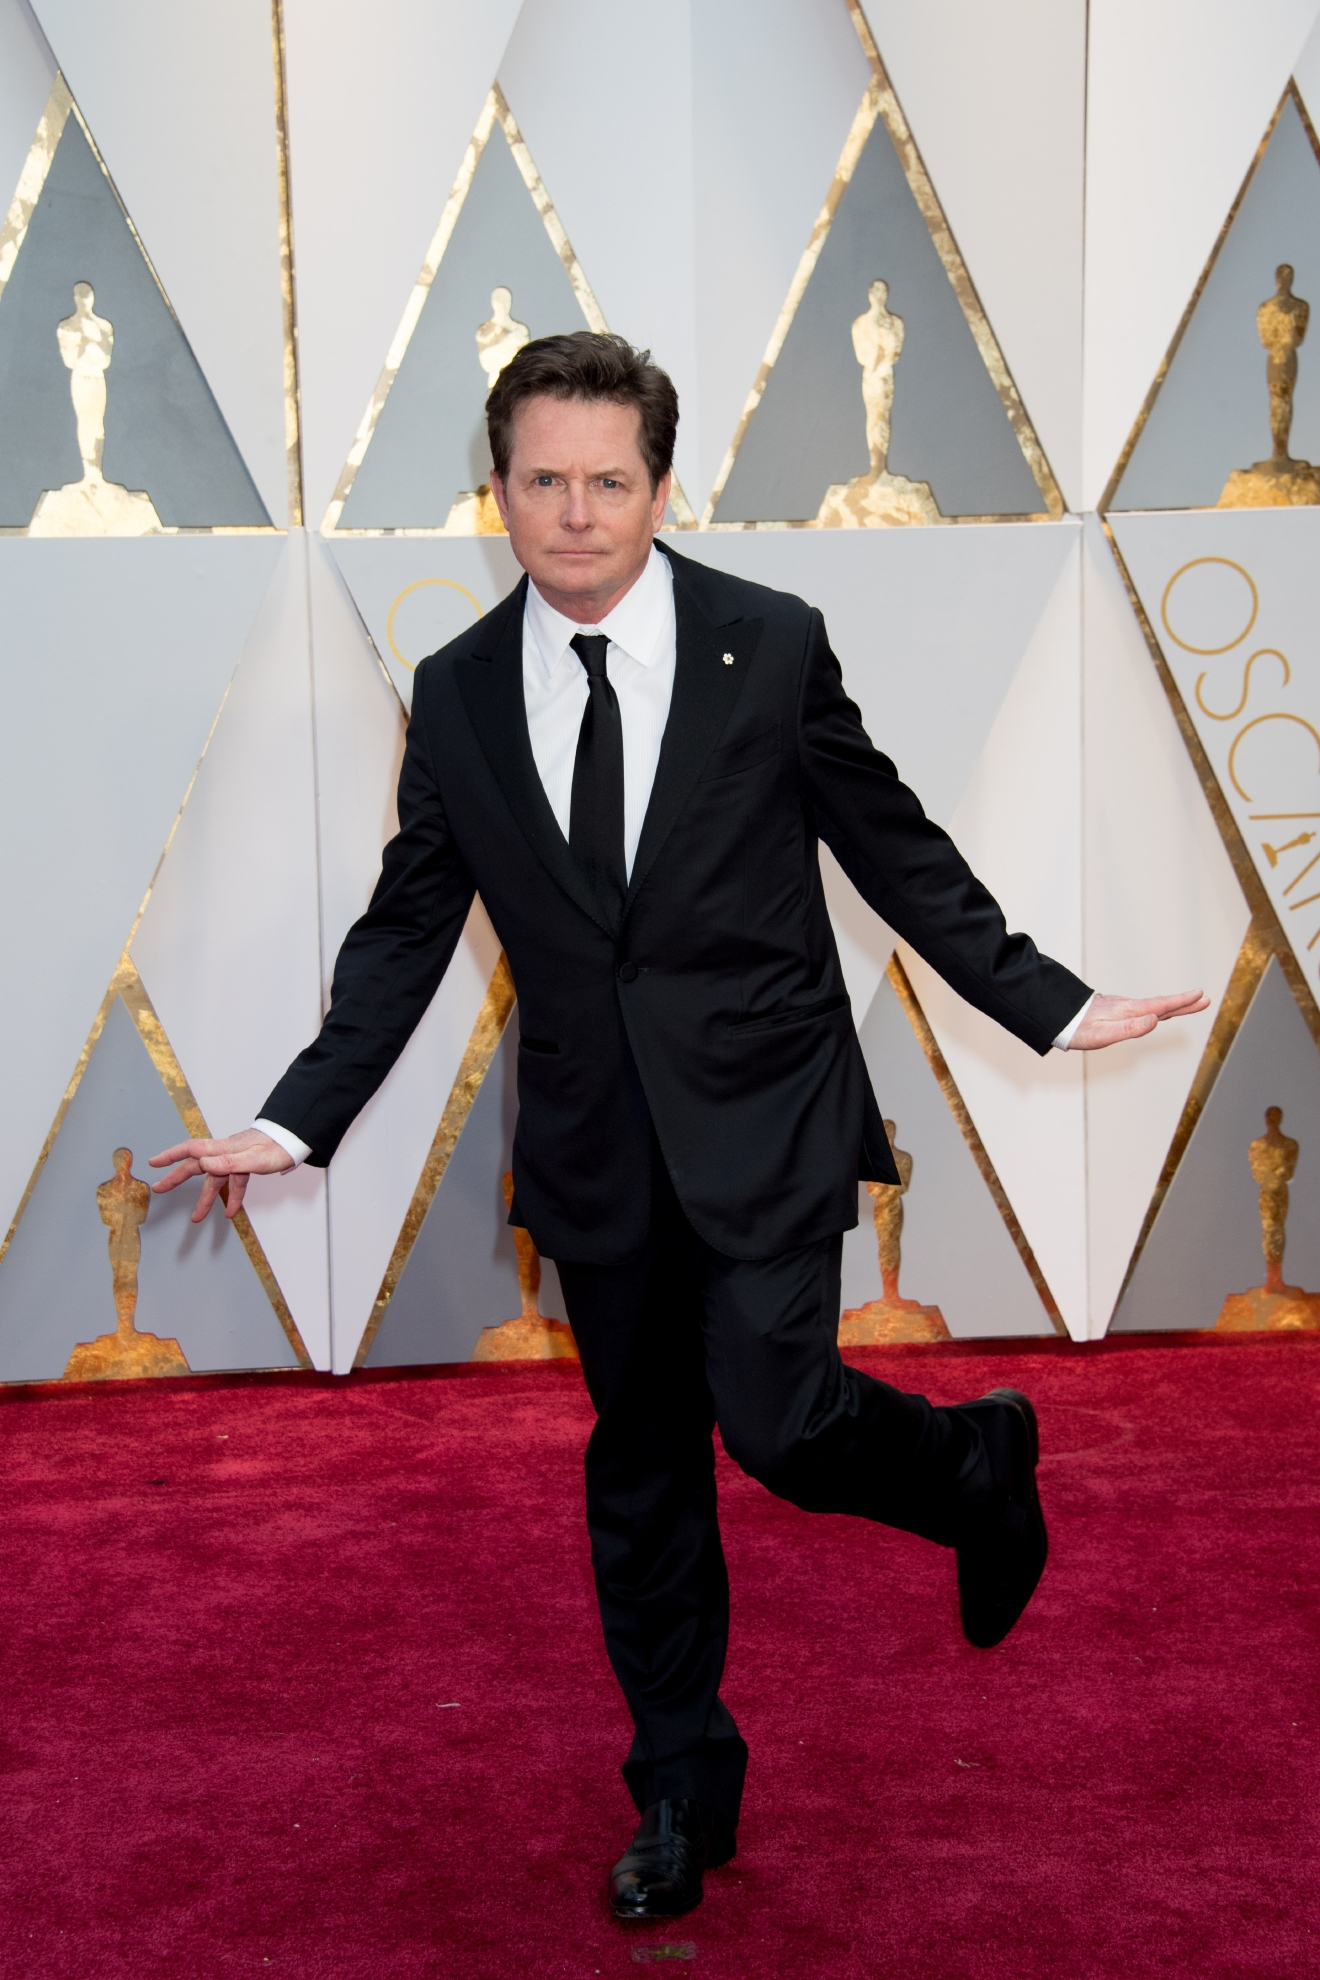 Michael J. Fox arrives at The 89th Oscars® at the Dolby® Theatre in Hollywood, CA on Sunday, February 26, 2017. (A.M.P.A.S.)